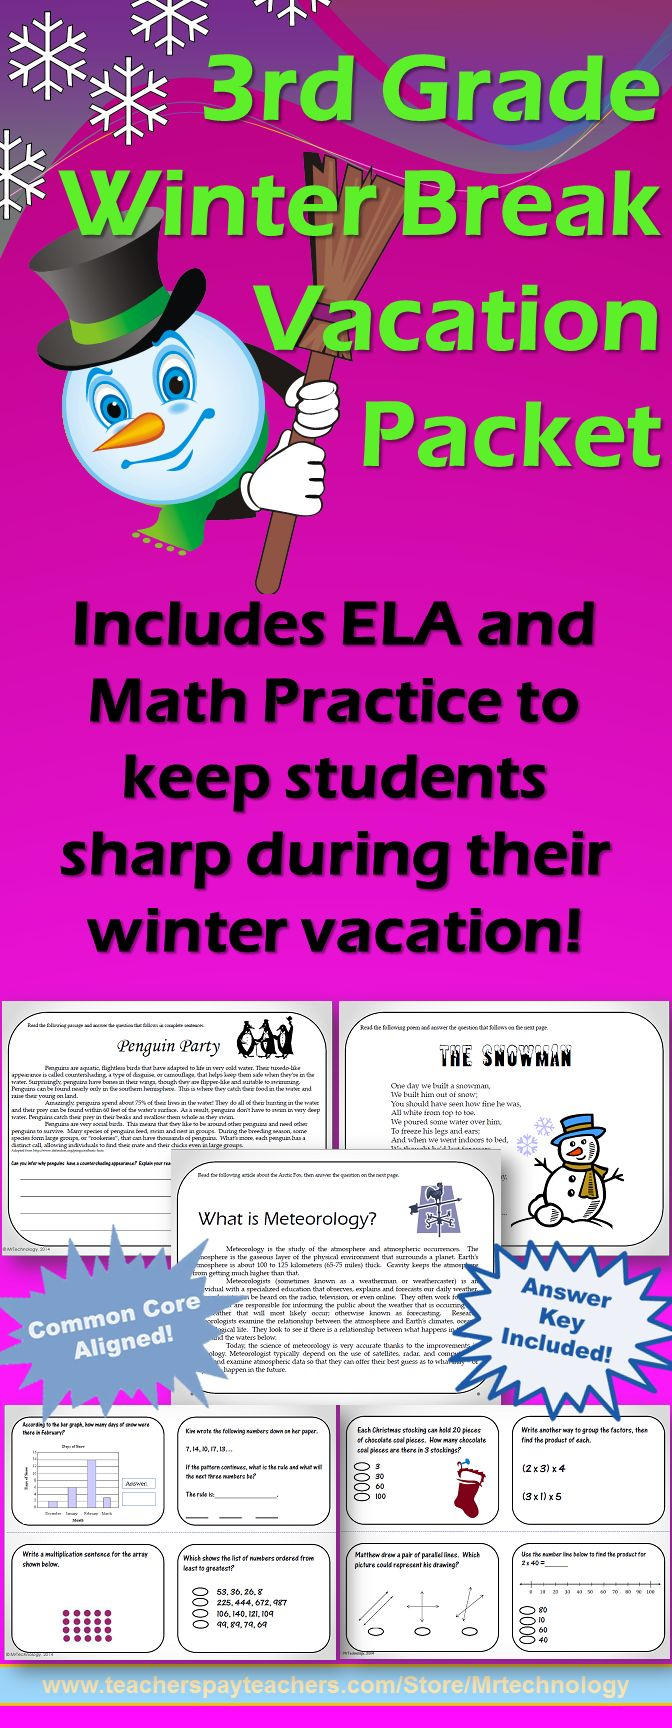 3rd grade winter break vacation packet ccss aligned for Fall break vacation ideas